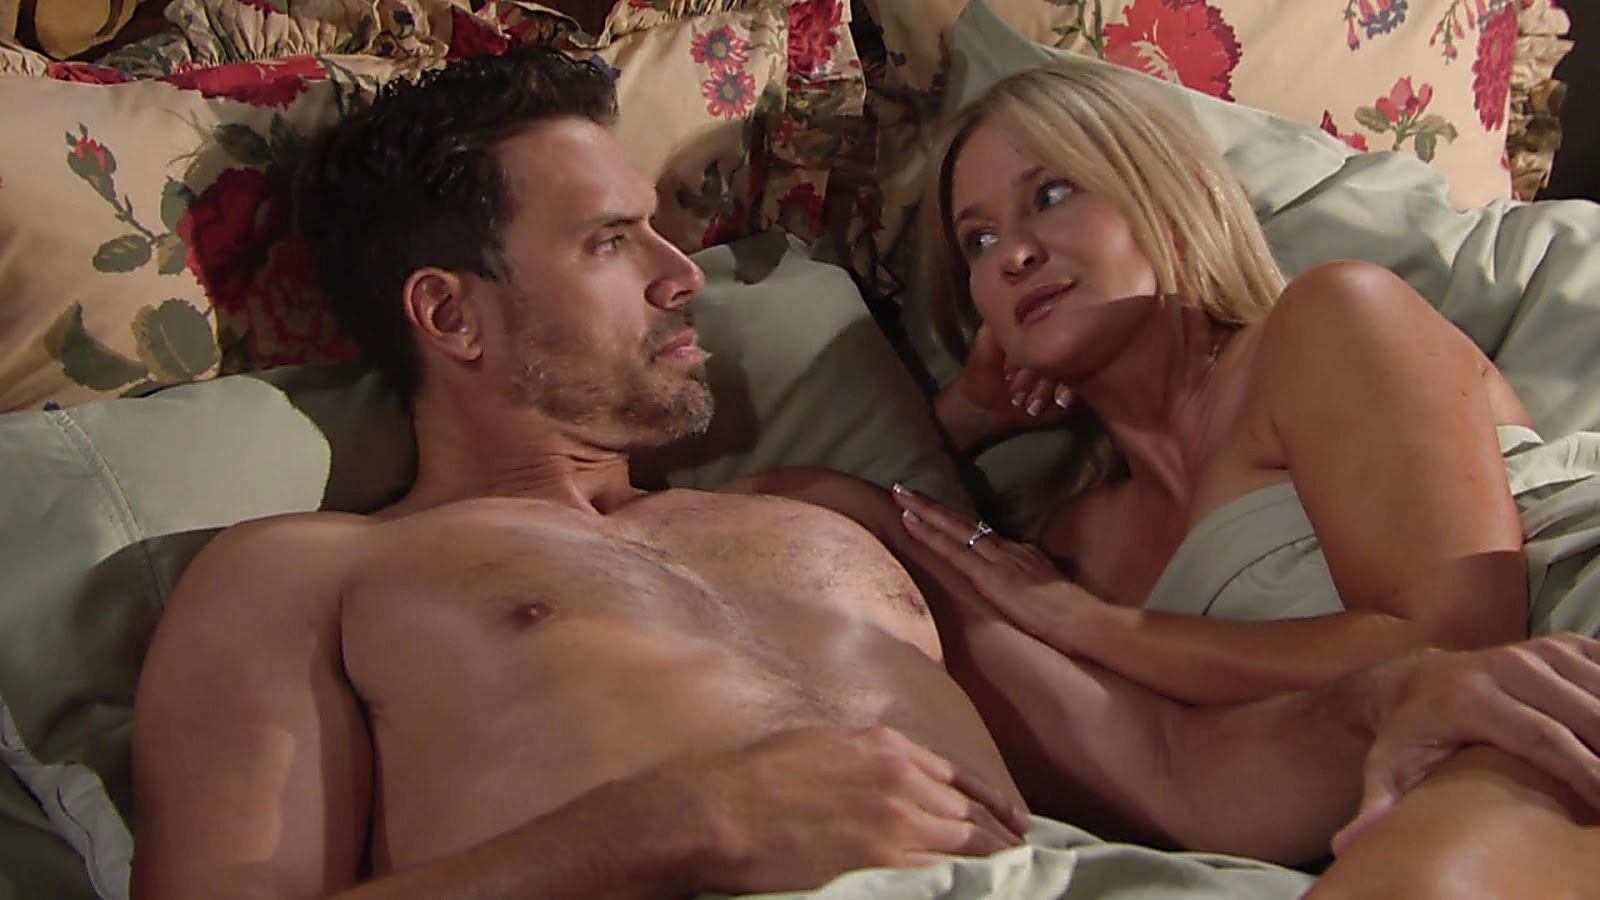 Joshua Morrow sexy shirtless scene August 26, 2018, 12pm